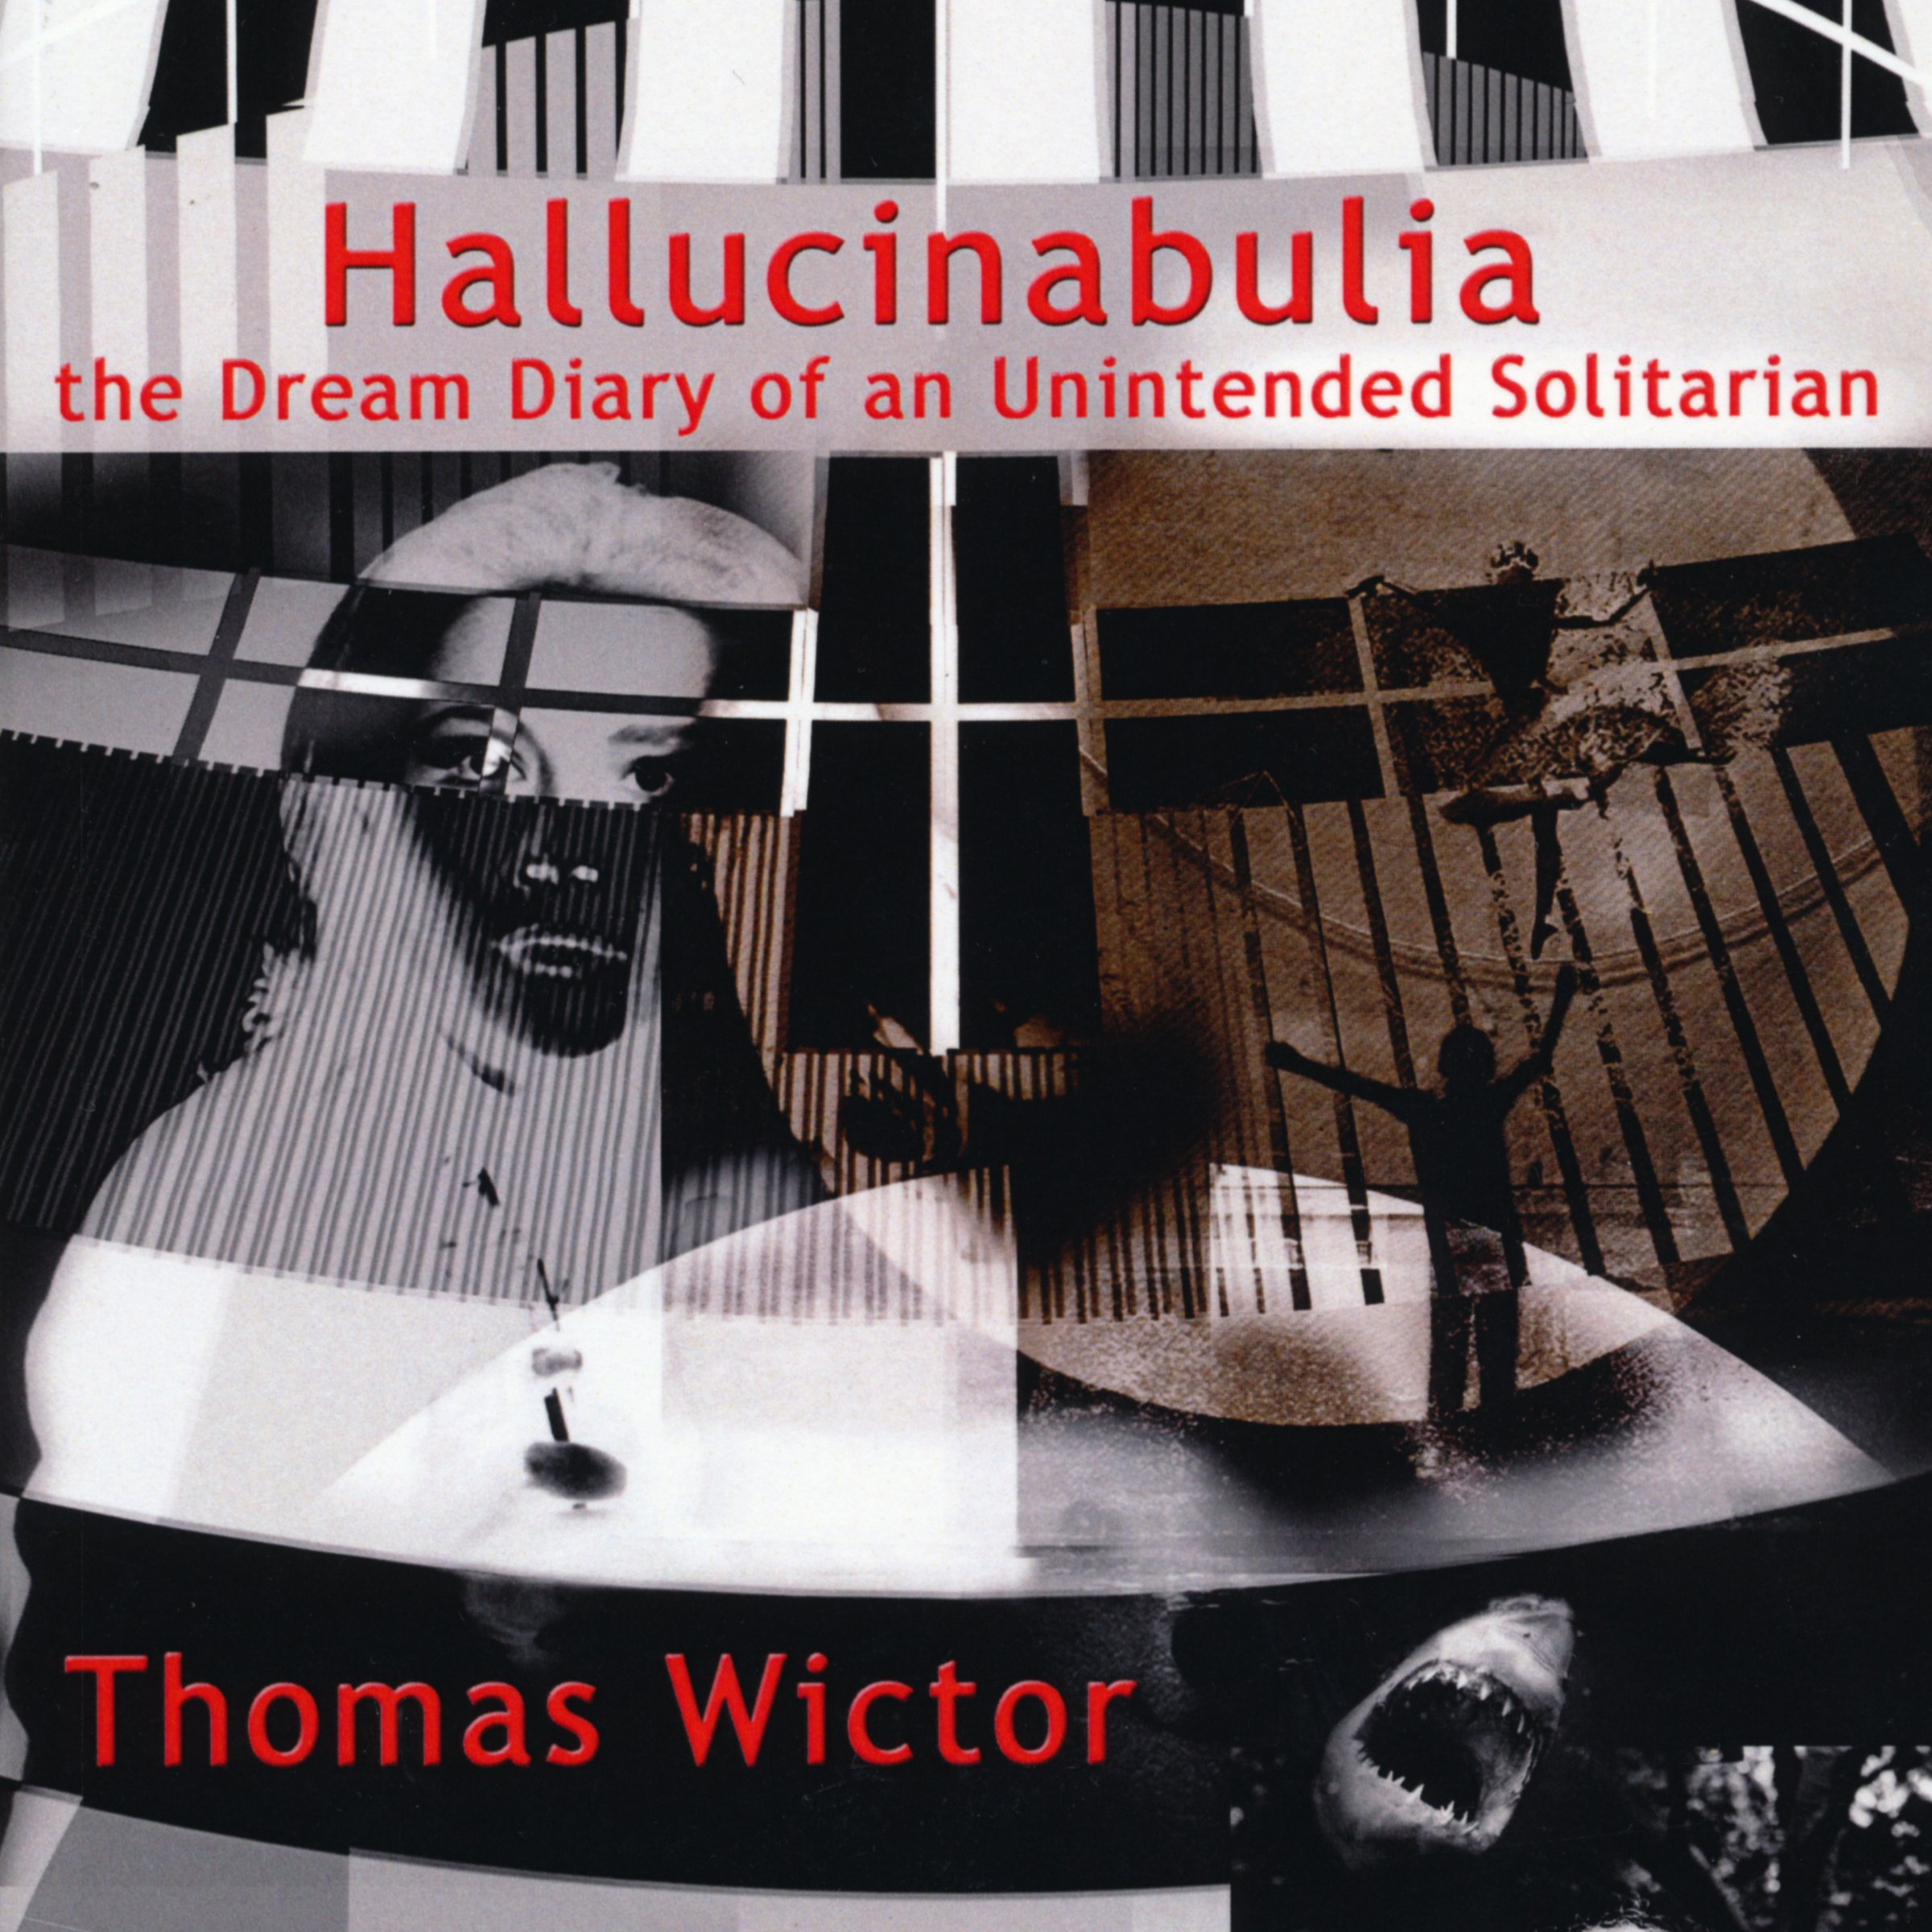 Hallucinabulia: The Dream Diary of an Unintended Solitarian